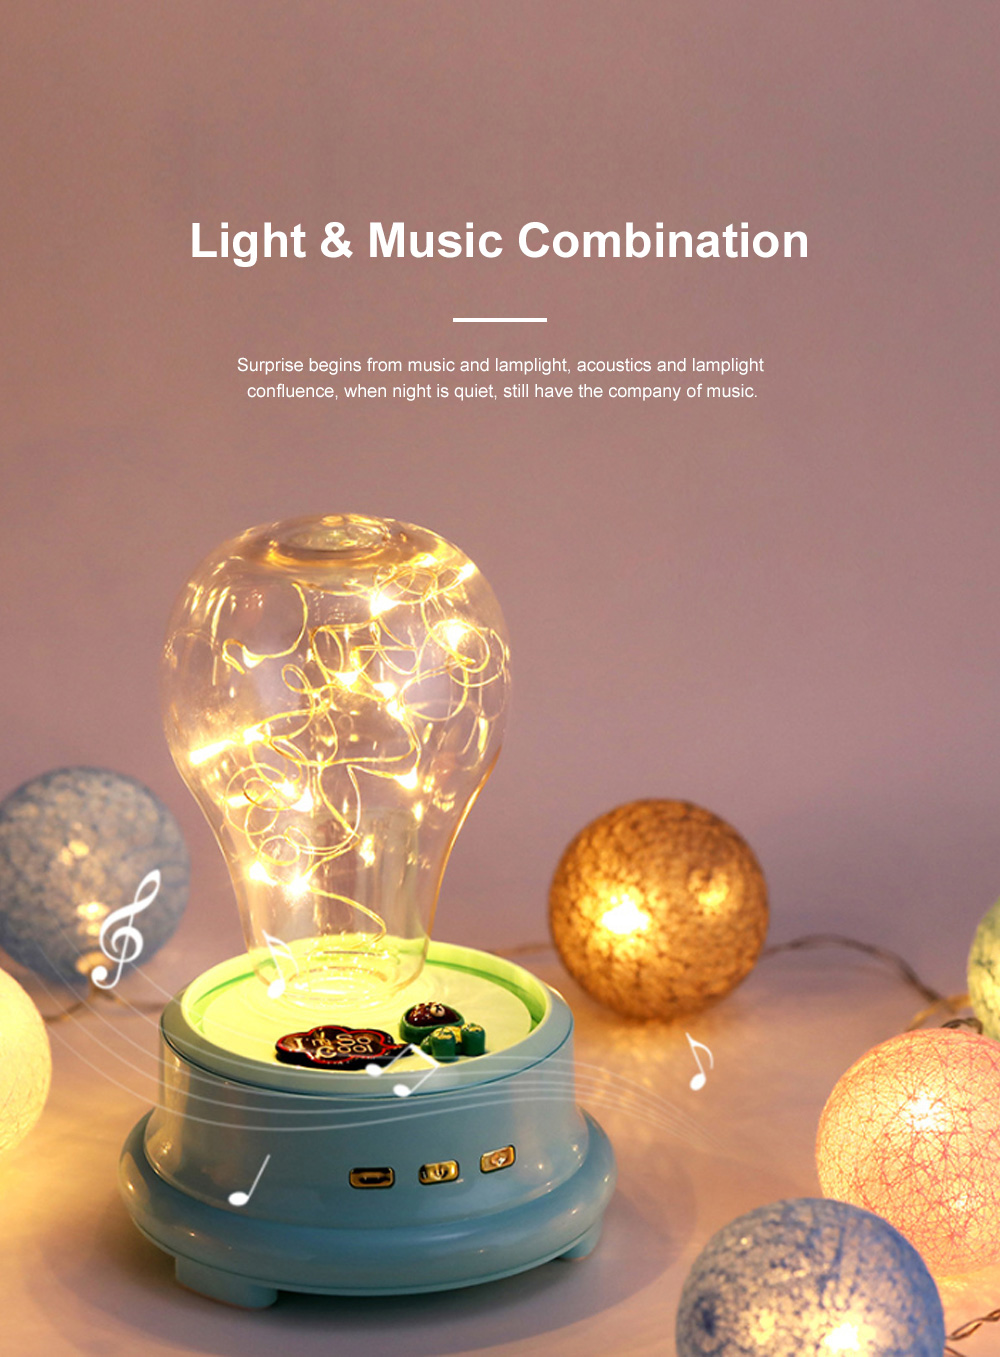 Dreamy Bluetooth Speaker LED Music Box Light Battery Powered 1200 MA Speaker for Table Decoration and Lighting 1